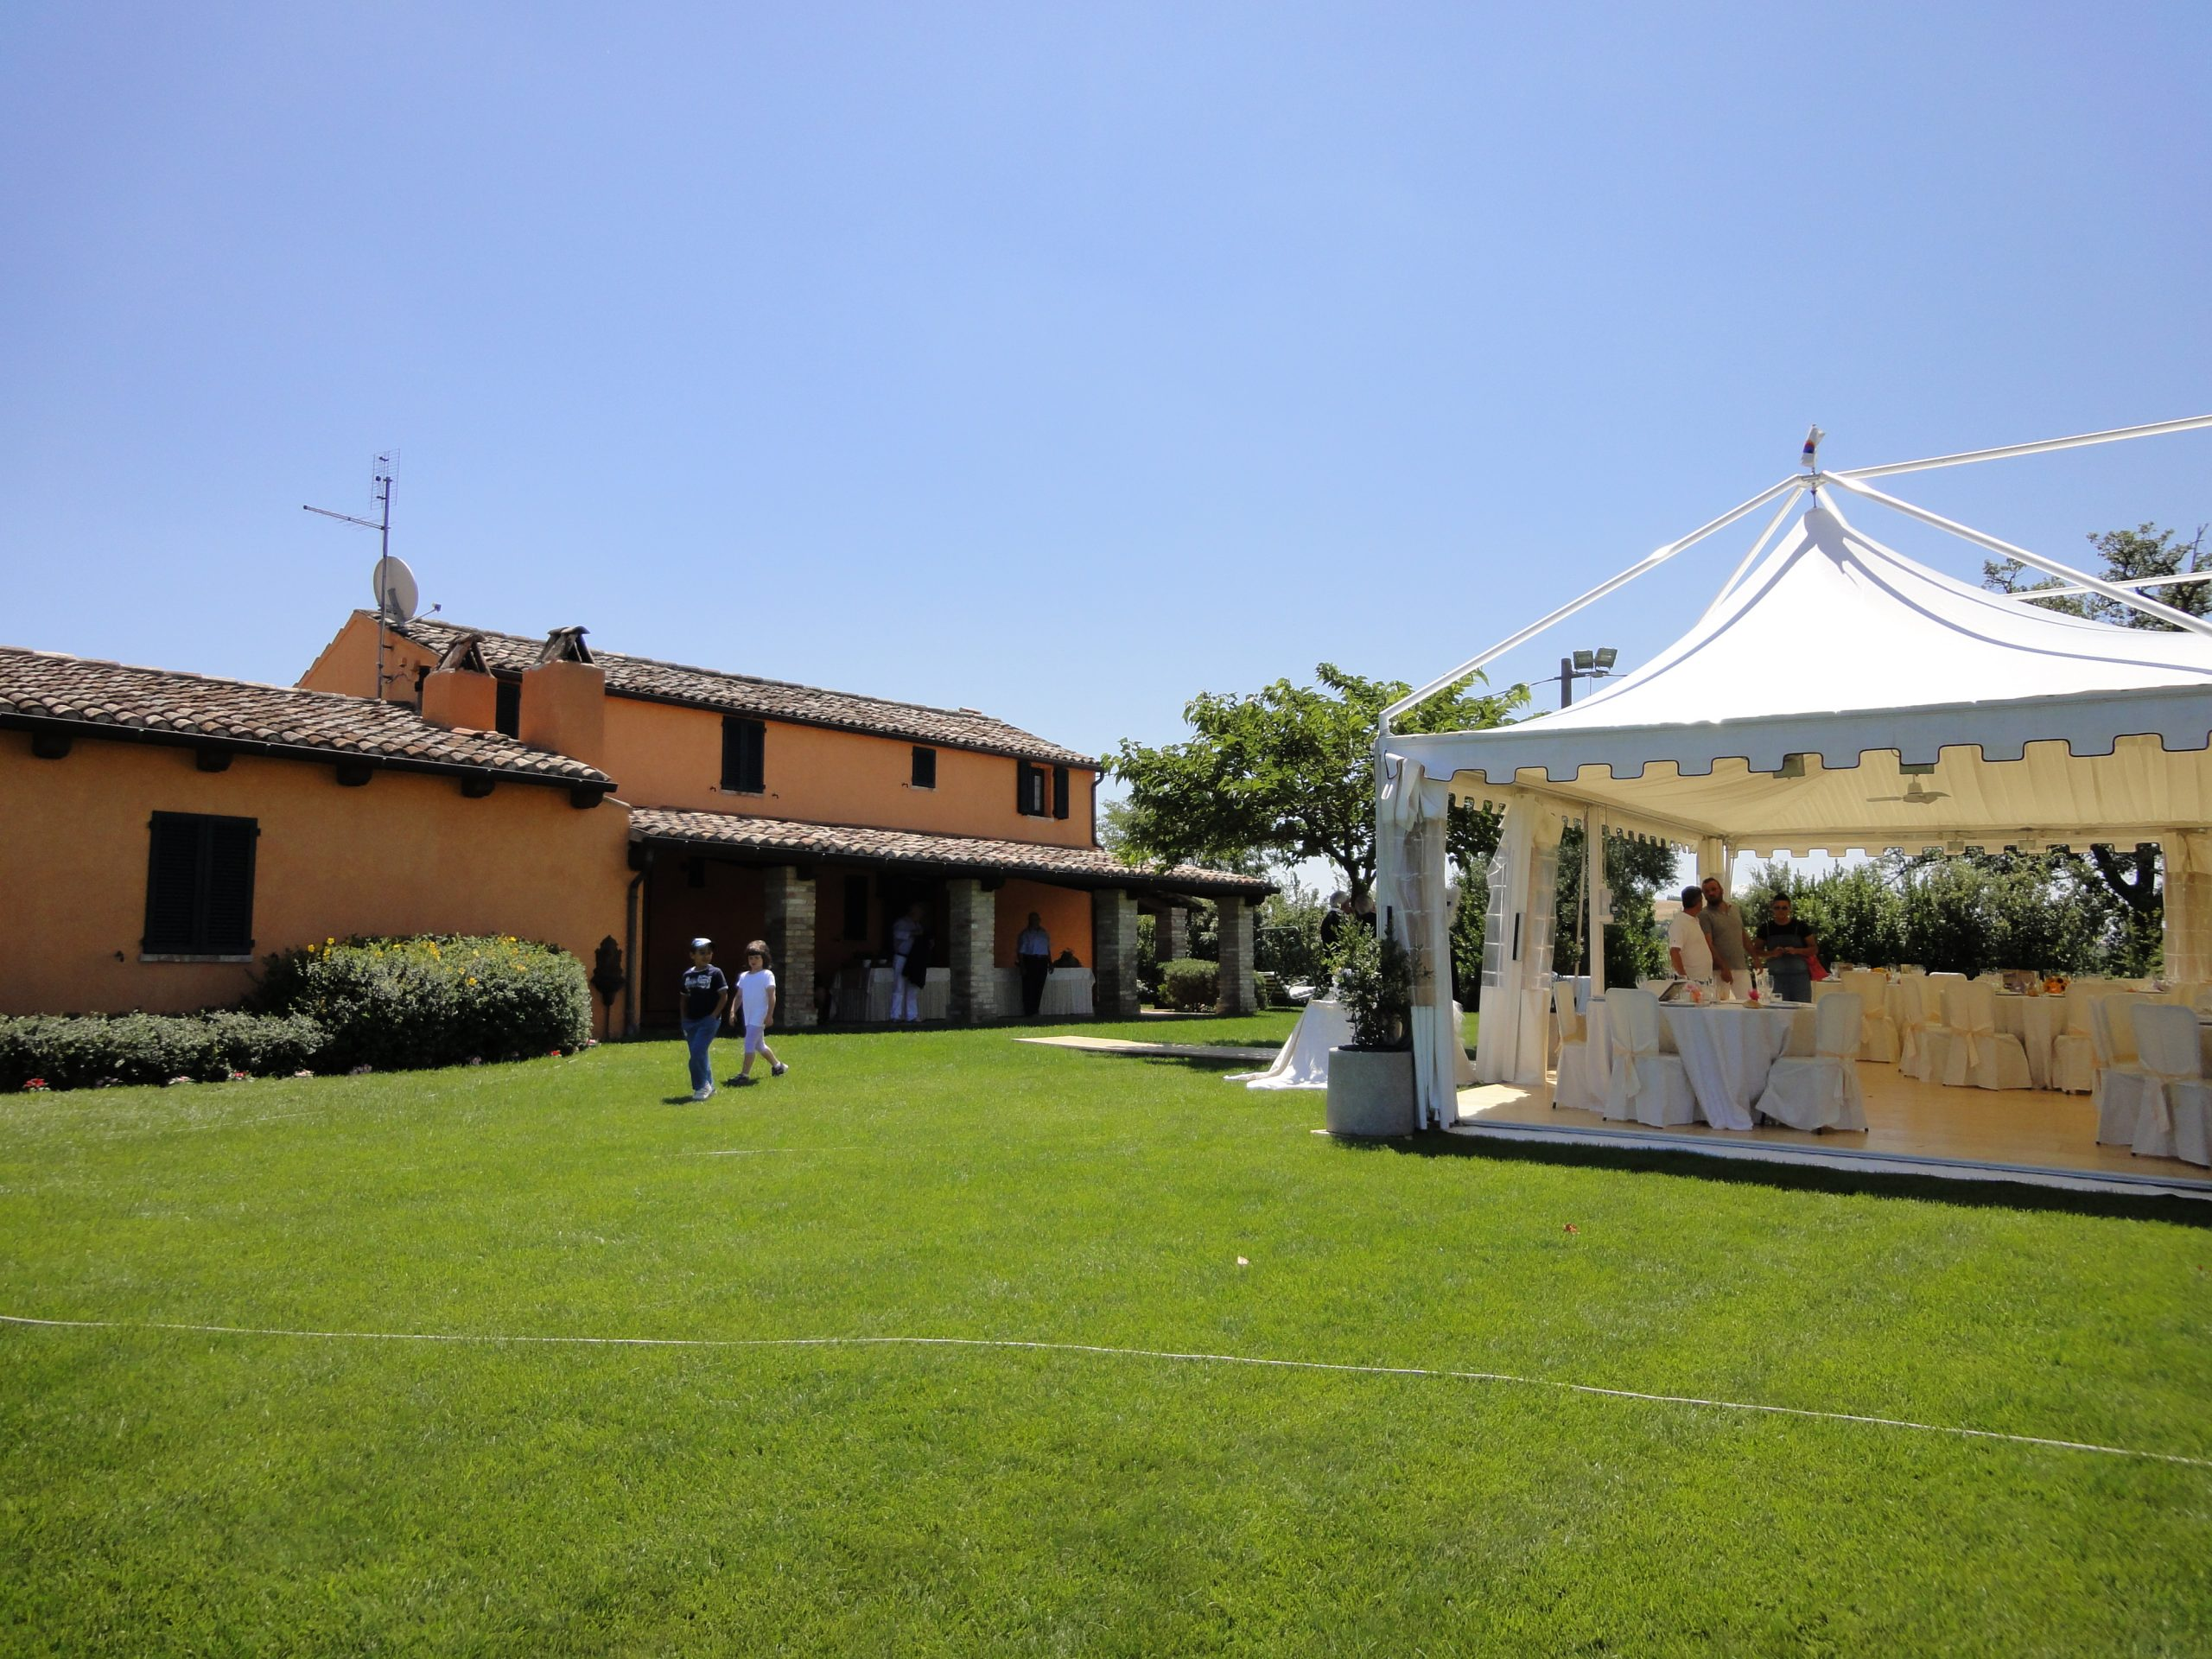 locations allestimento con gazebo